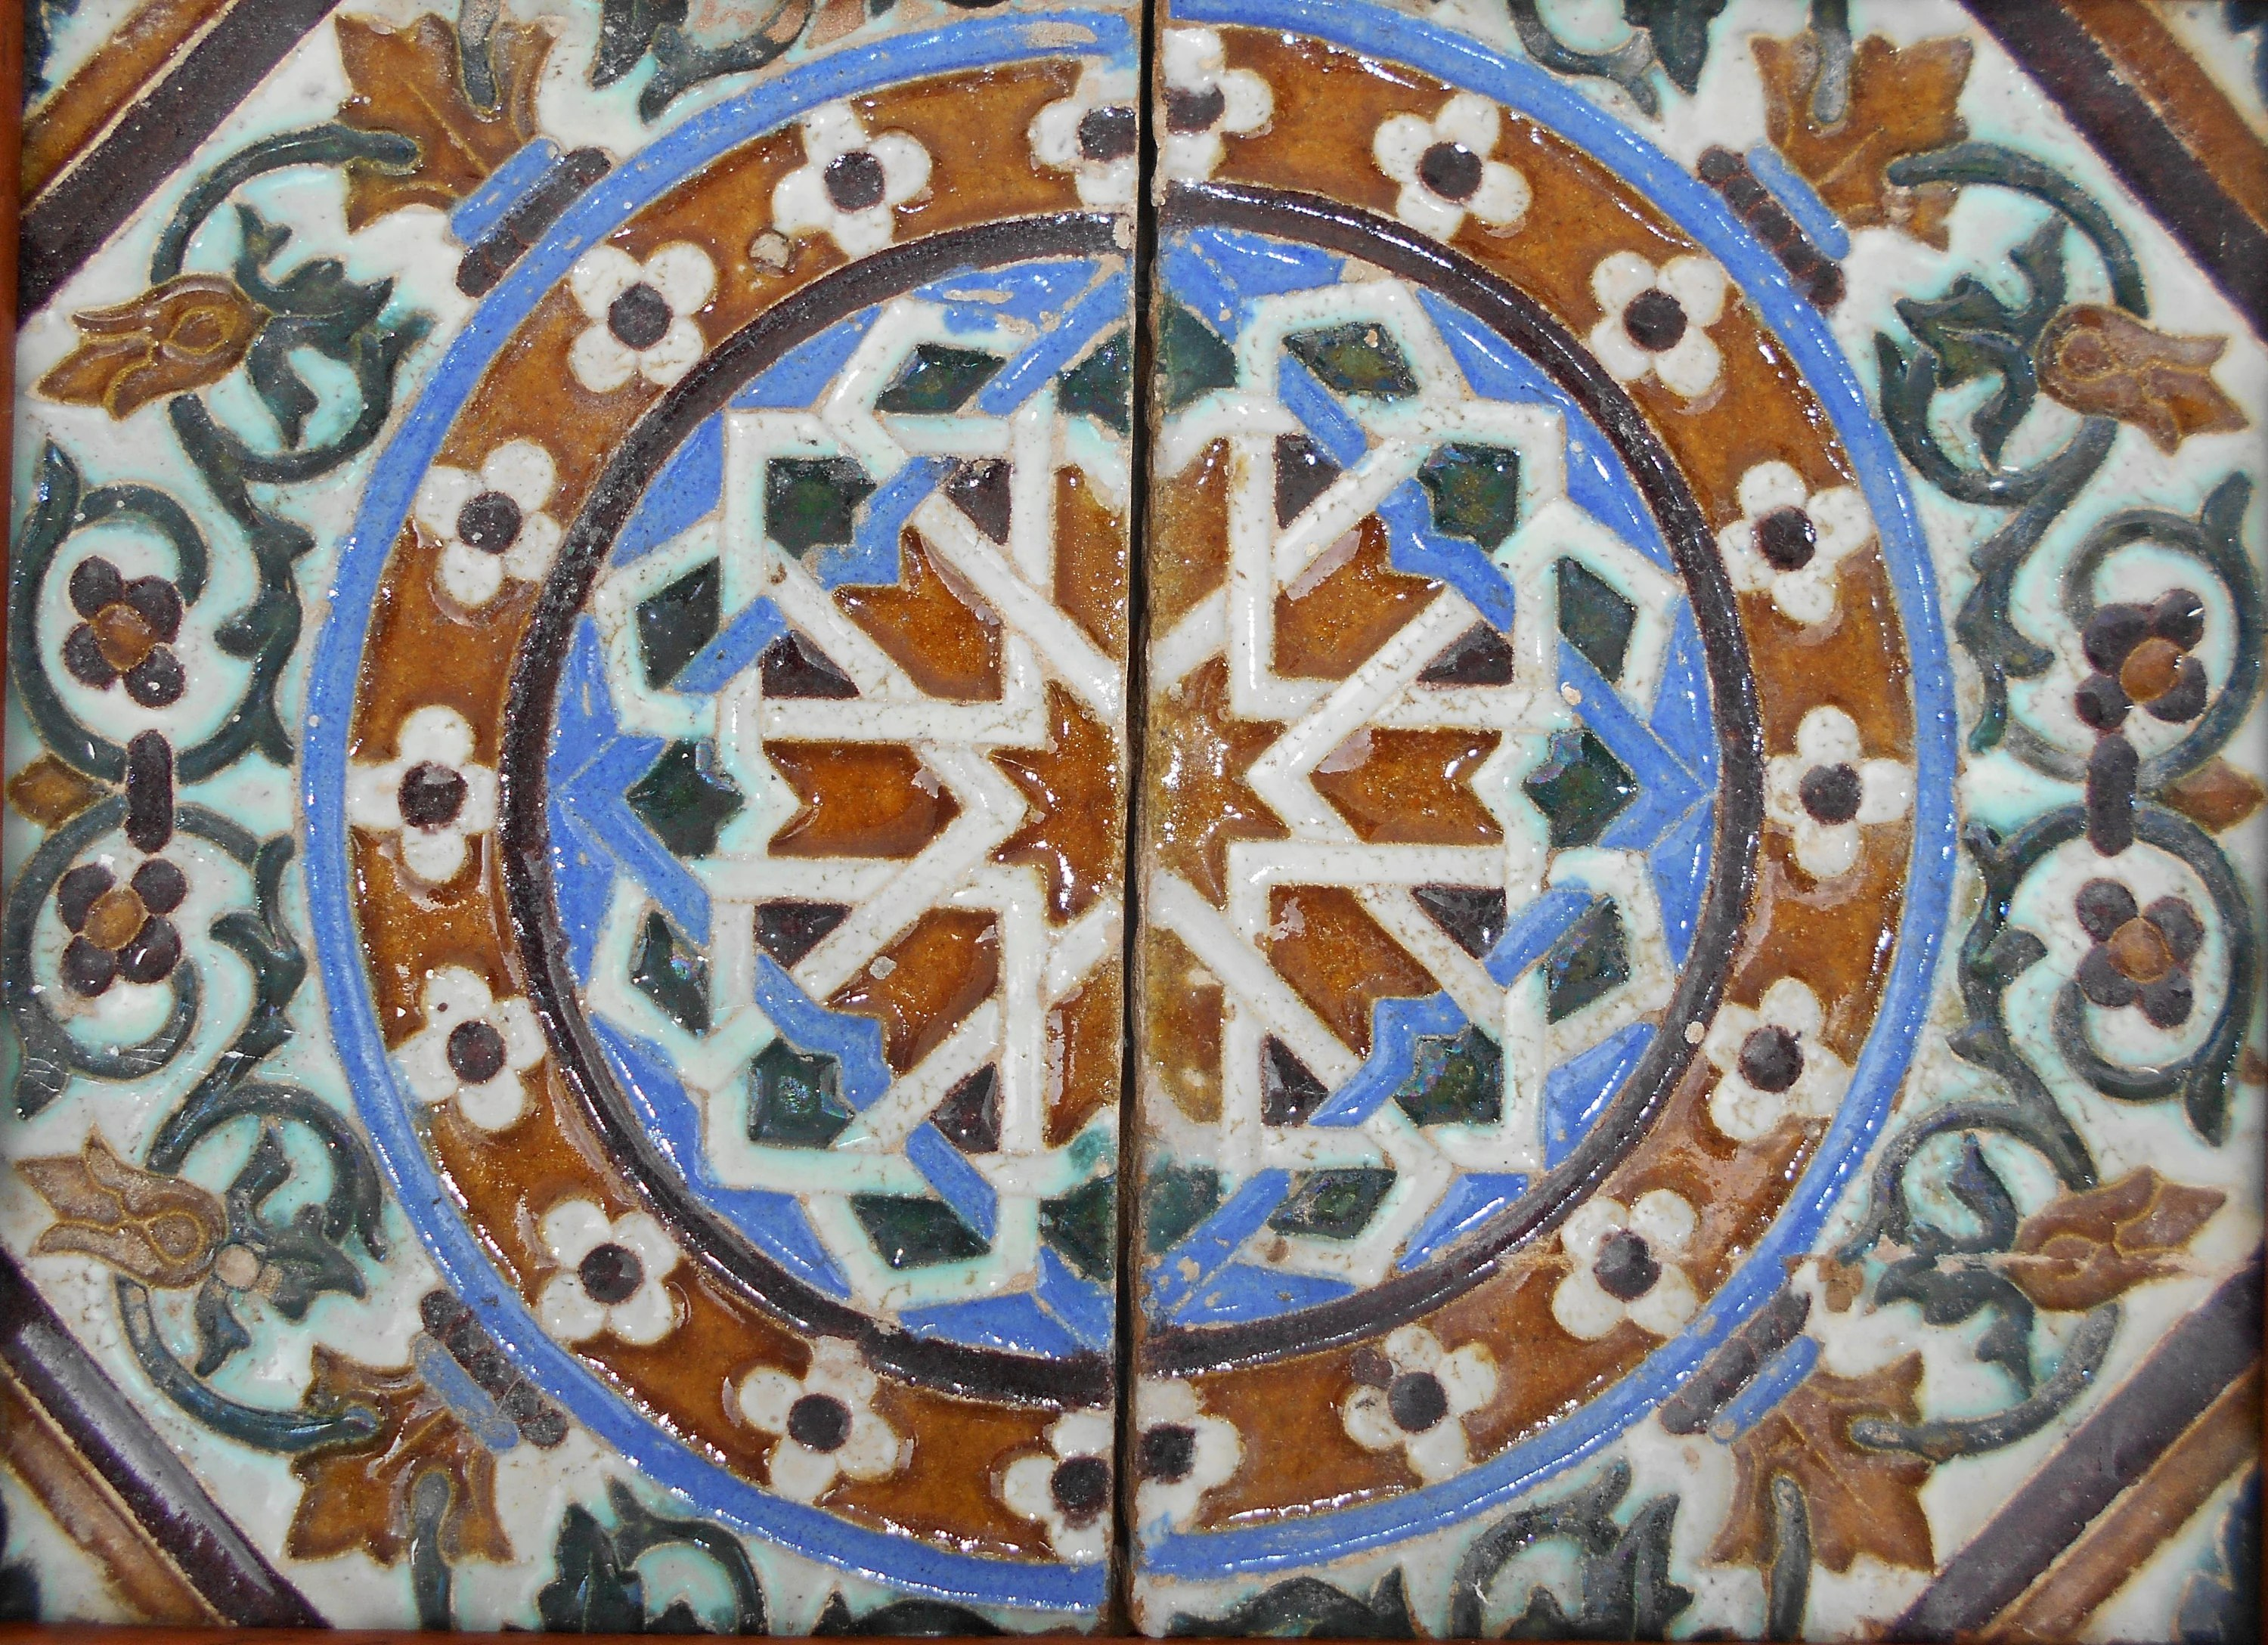 Azulejos Sevilla Pair 2 Azulejos Tiles Antique Spain 18th 19th Century Seville Sevilla Spain Antique Spanish Moorish